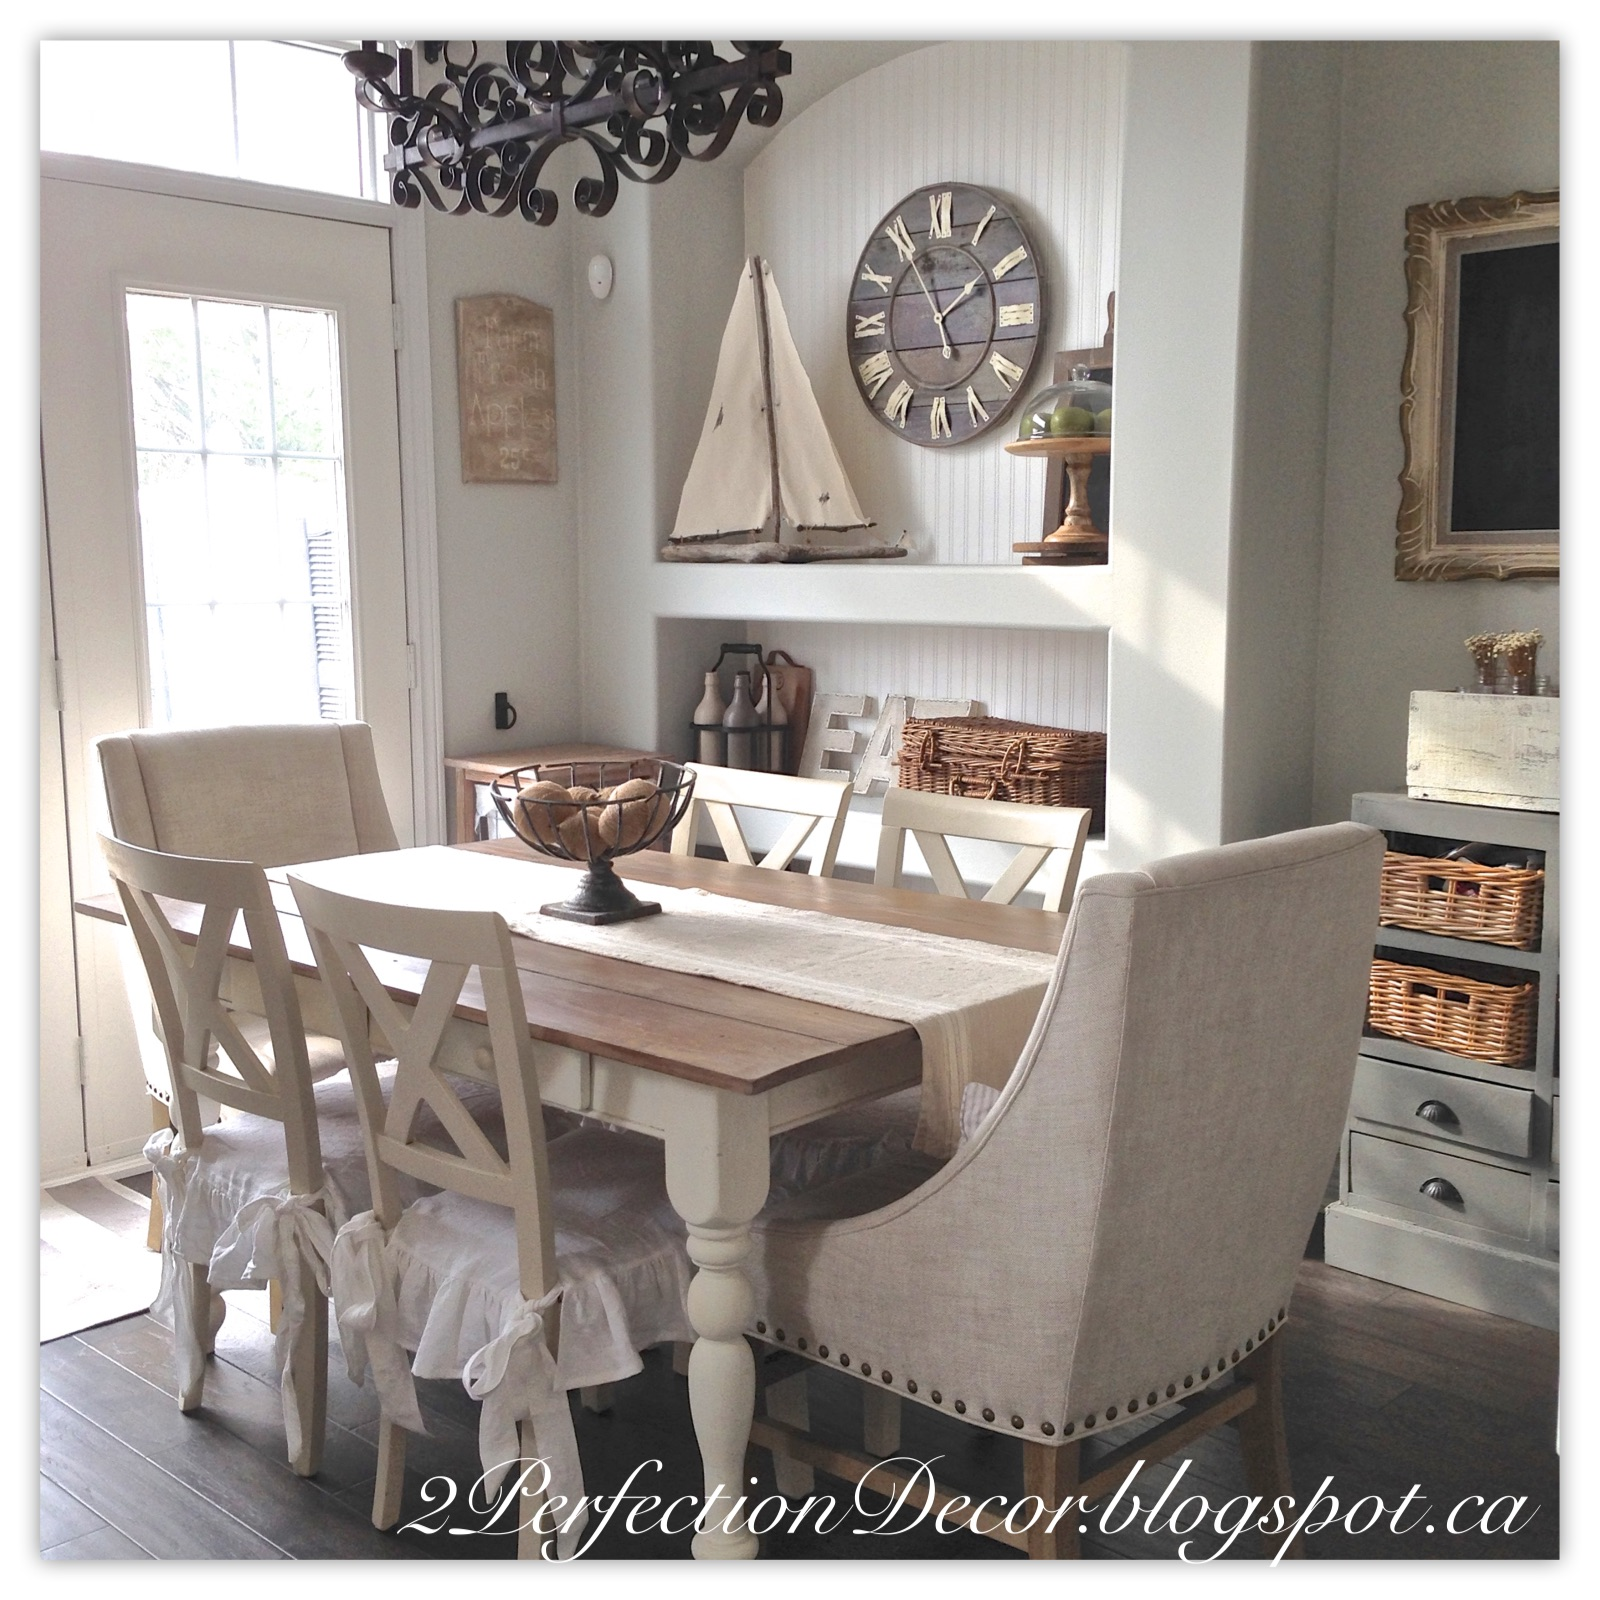 Decoration For Kitchen Table: 2Perfection Decor: Planking Our Farmhouse Table Top